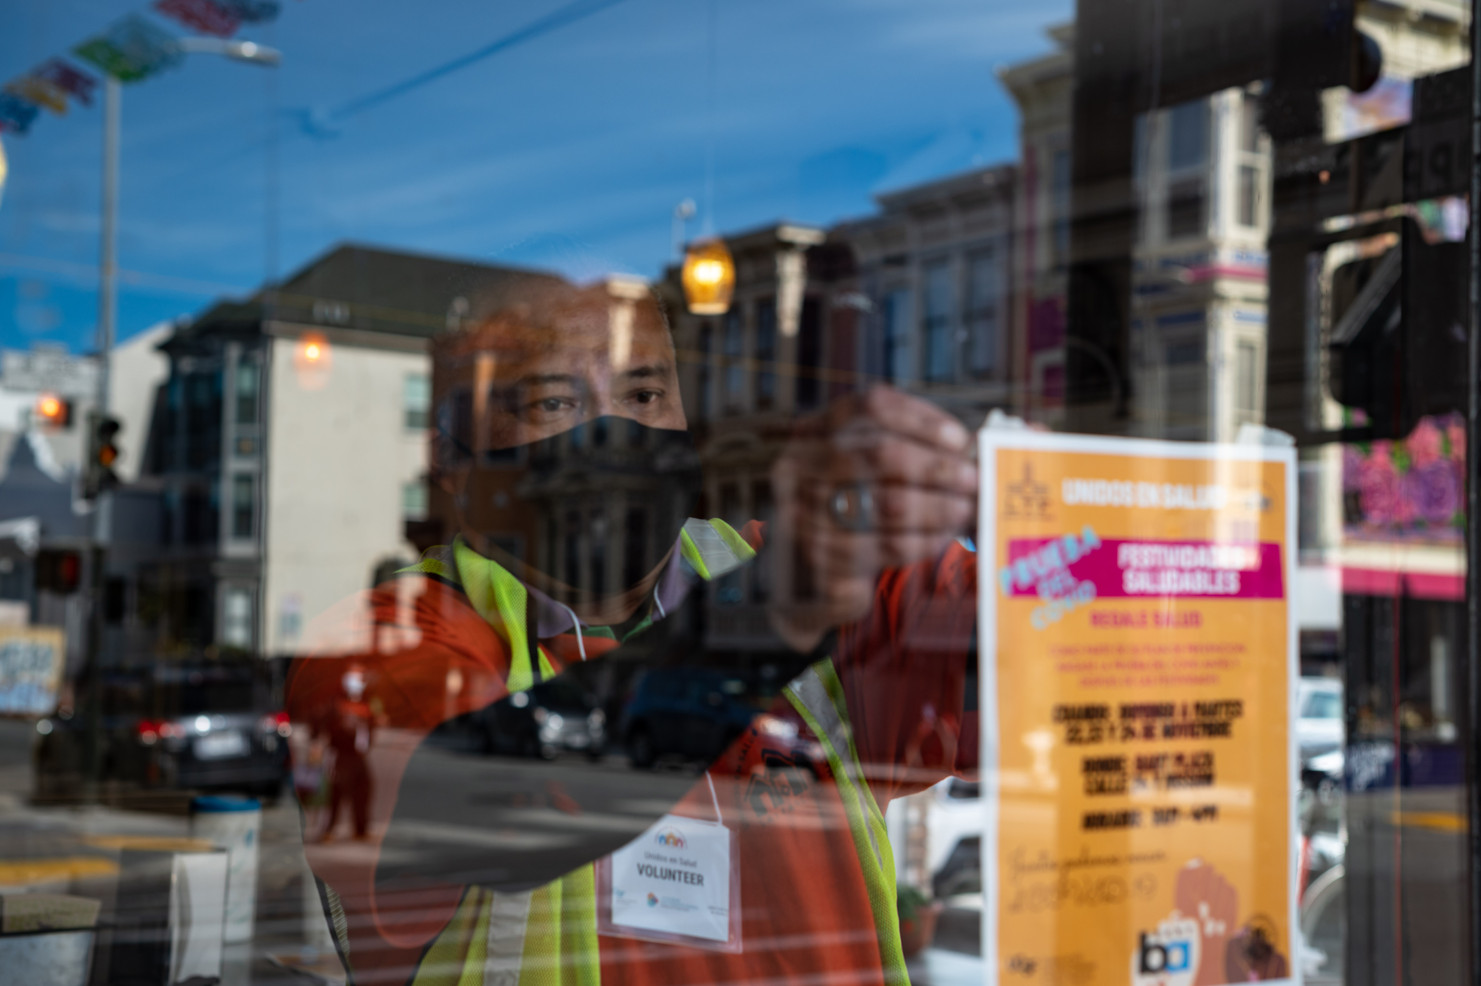 Marco Carballido, a volunteer with Unidos en Salud puts up a flier in the window of a local business notifying the Latinx community of free low barrier COVID-19 testing.